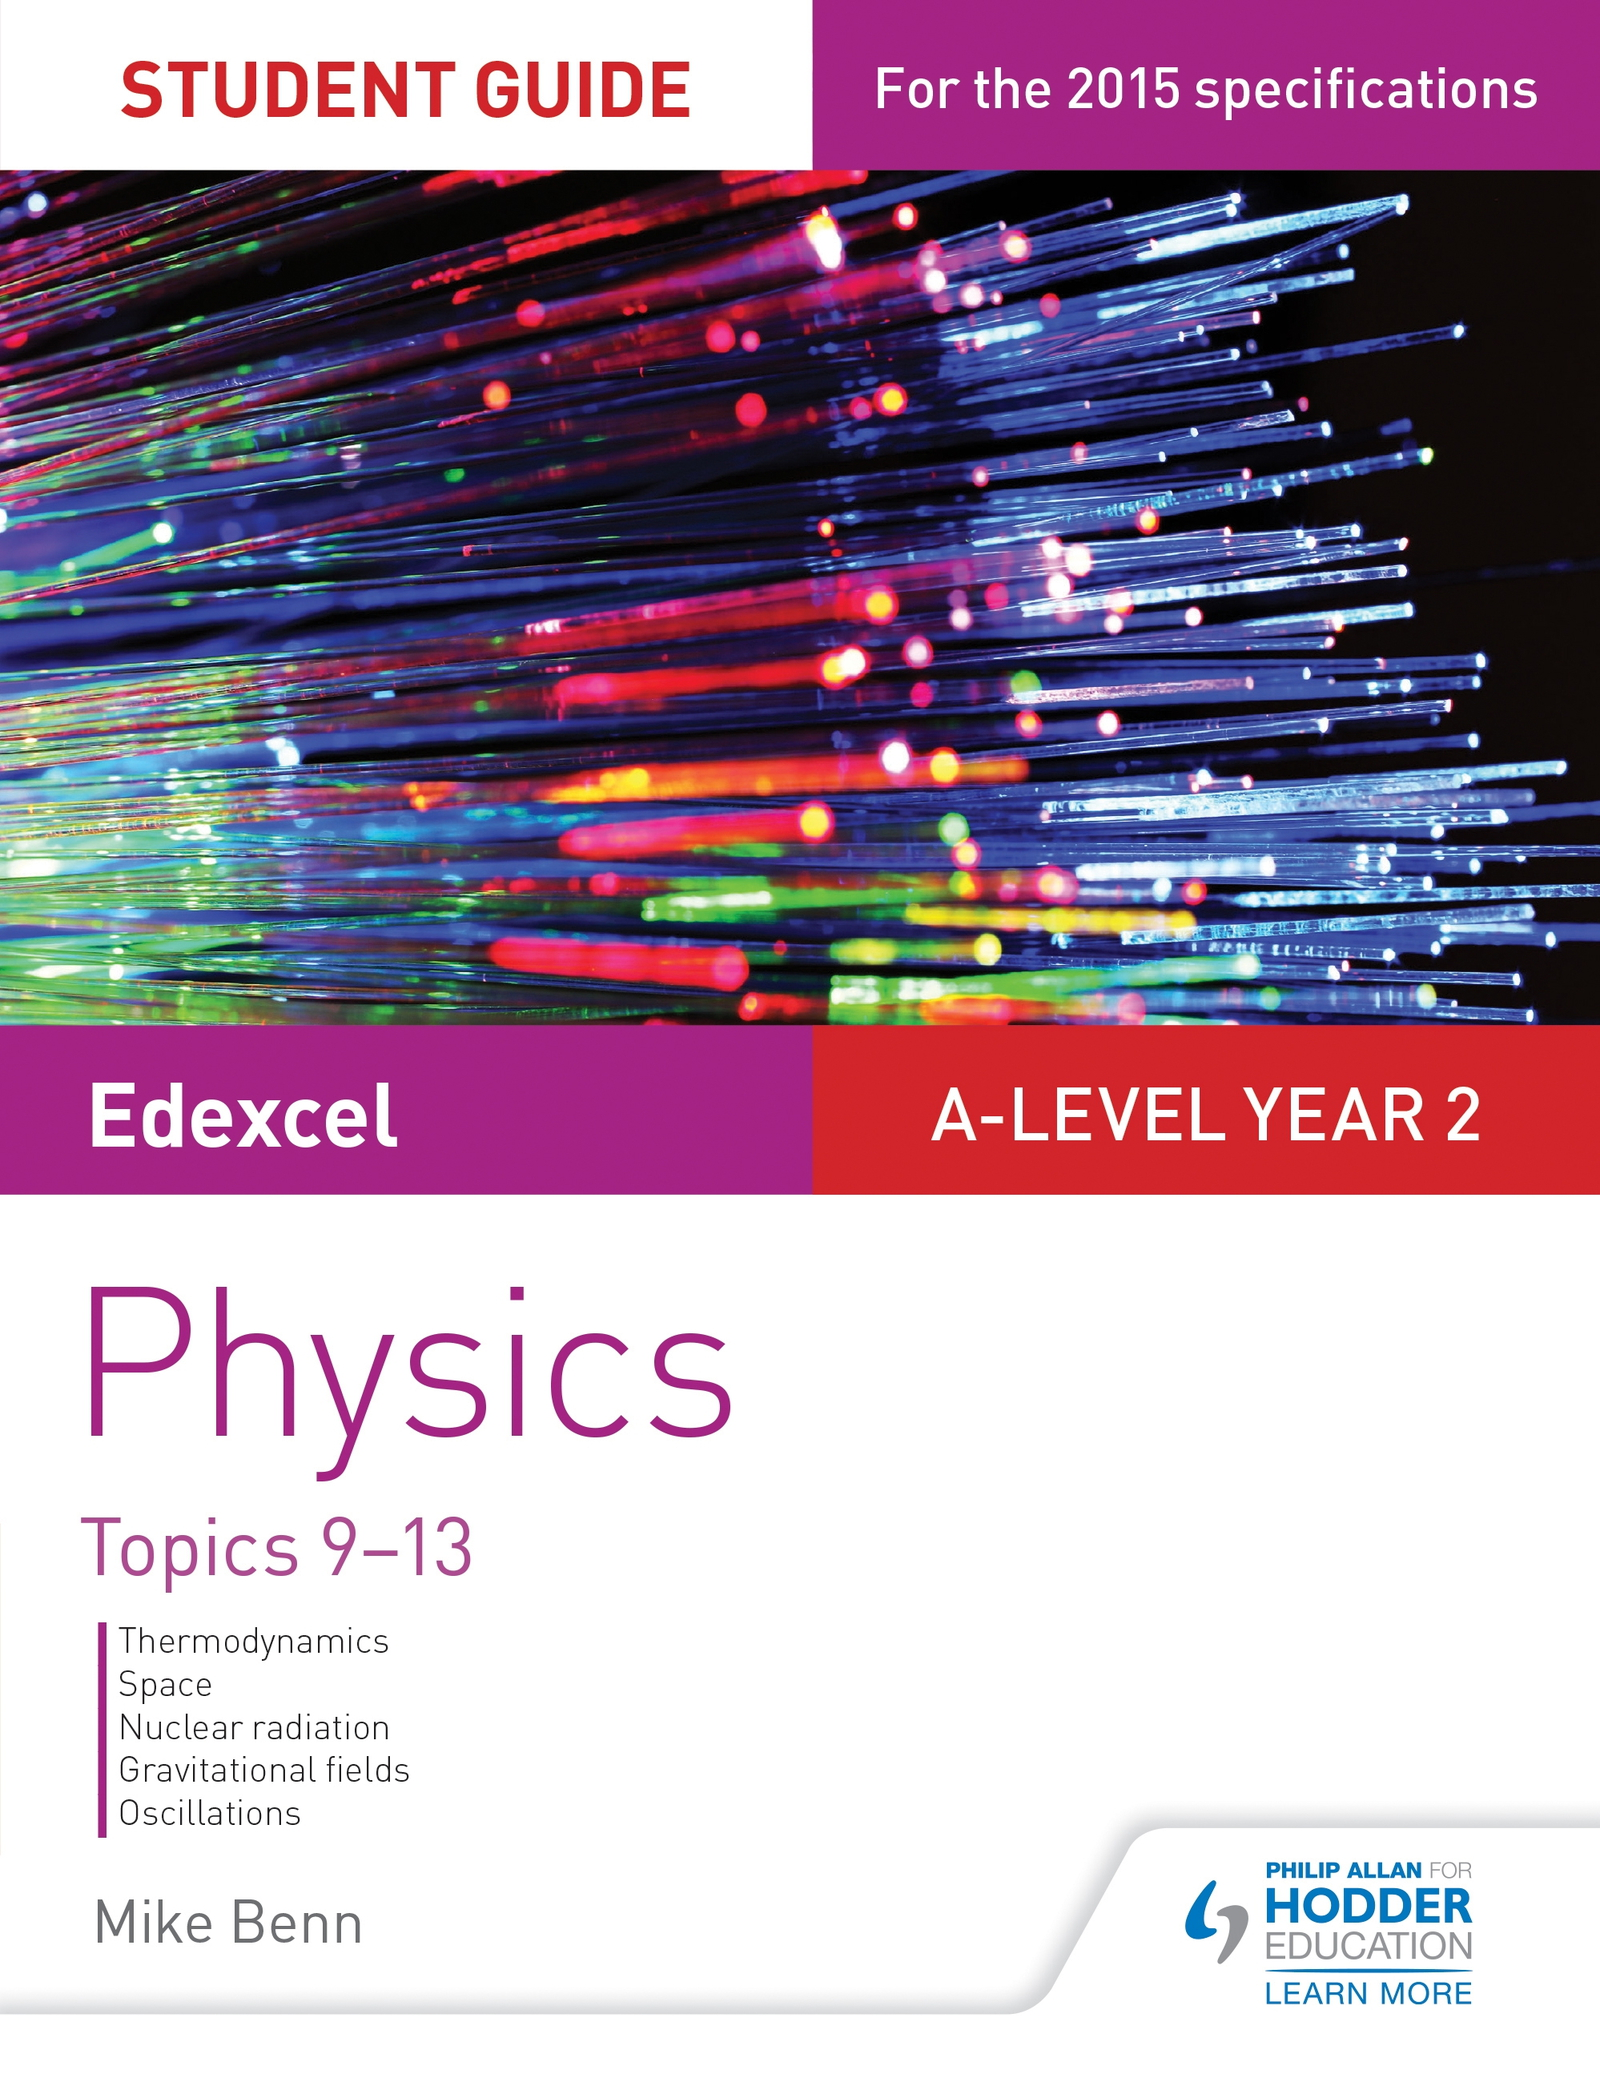 Edexcel A Level Year 2 Physics Student Guide: Topics 9-13